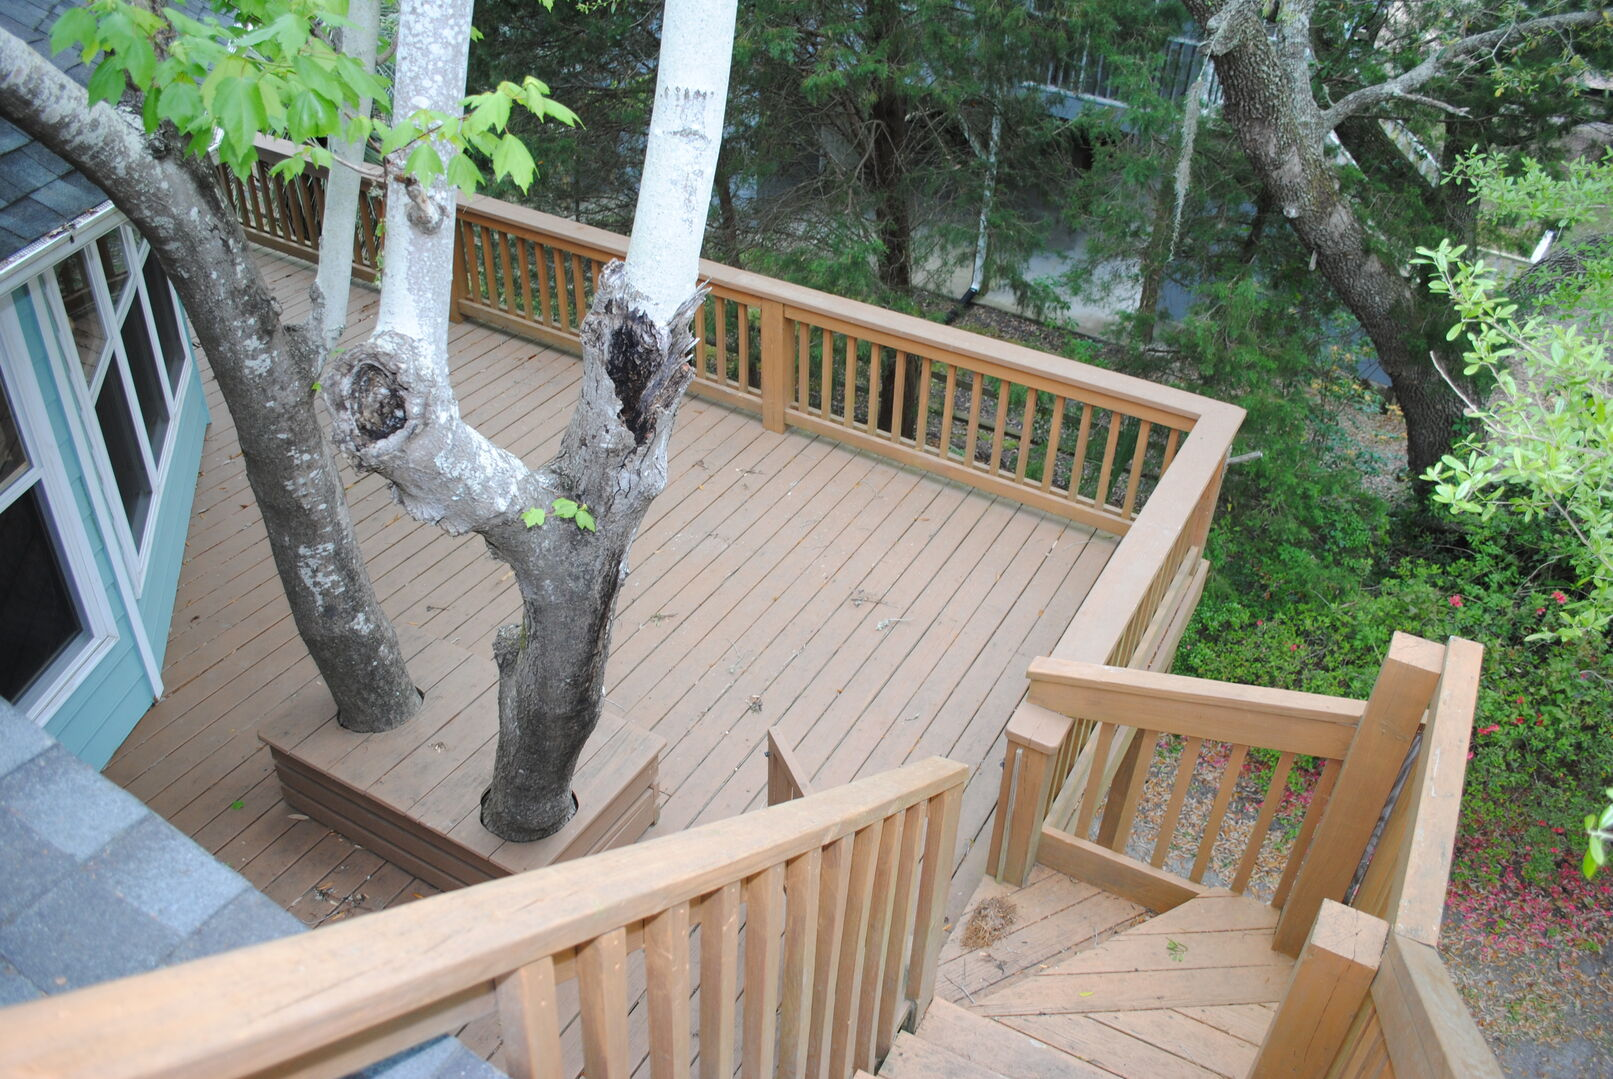 Sun Deck - First Floor (View from top of stairs)